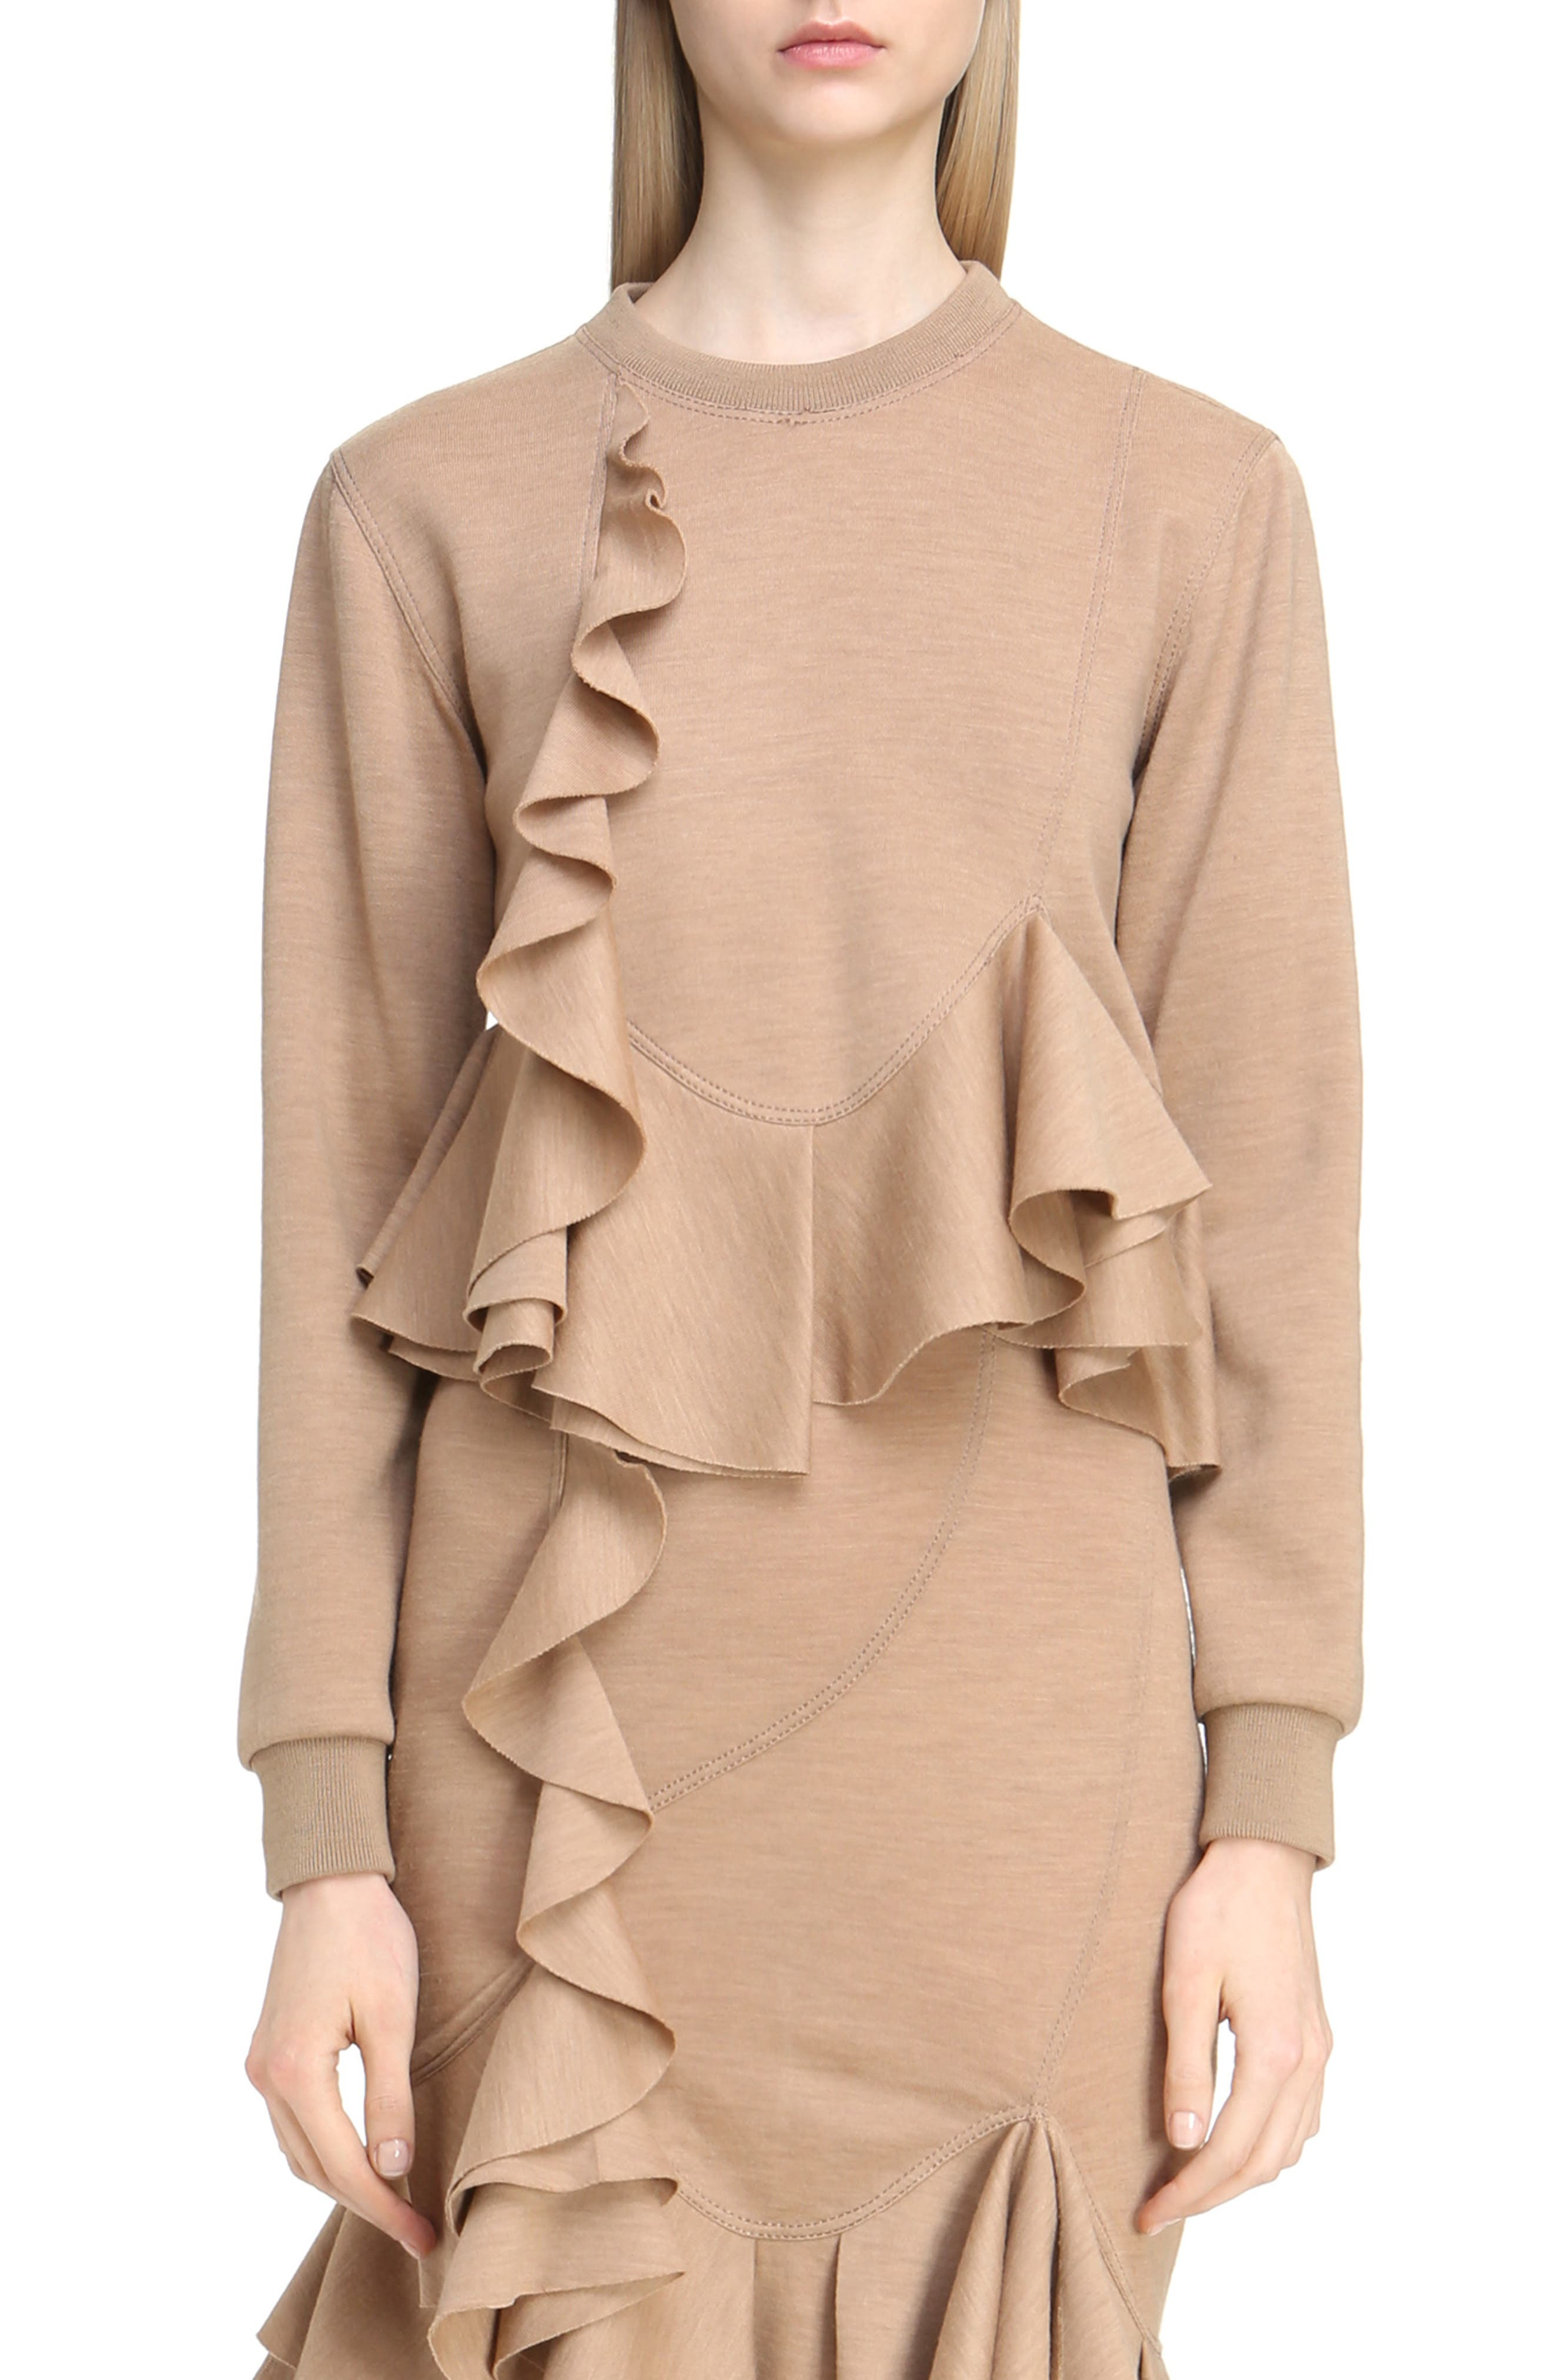 Givenchy Ruffled Wool Sweatshirt